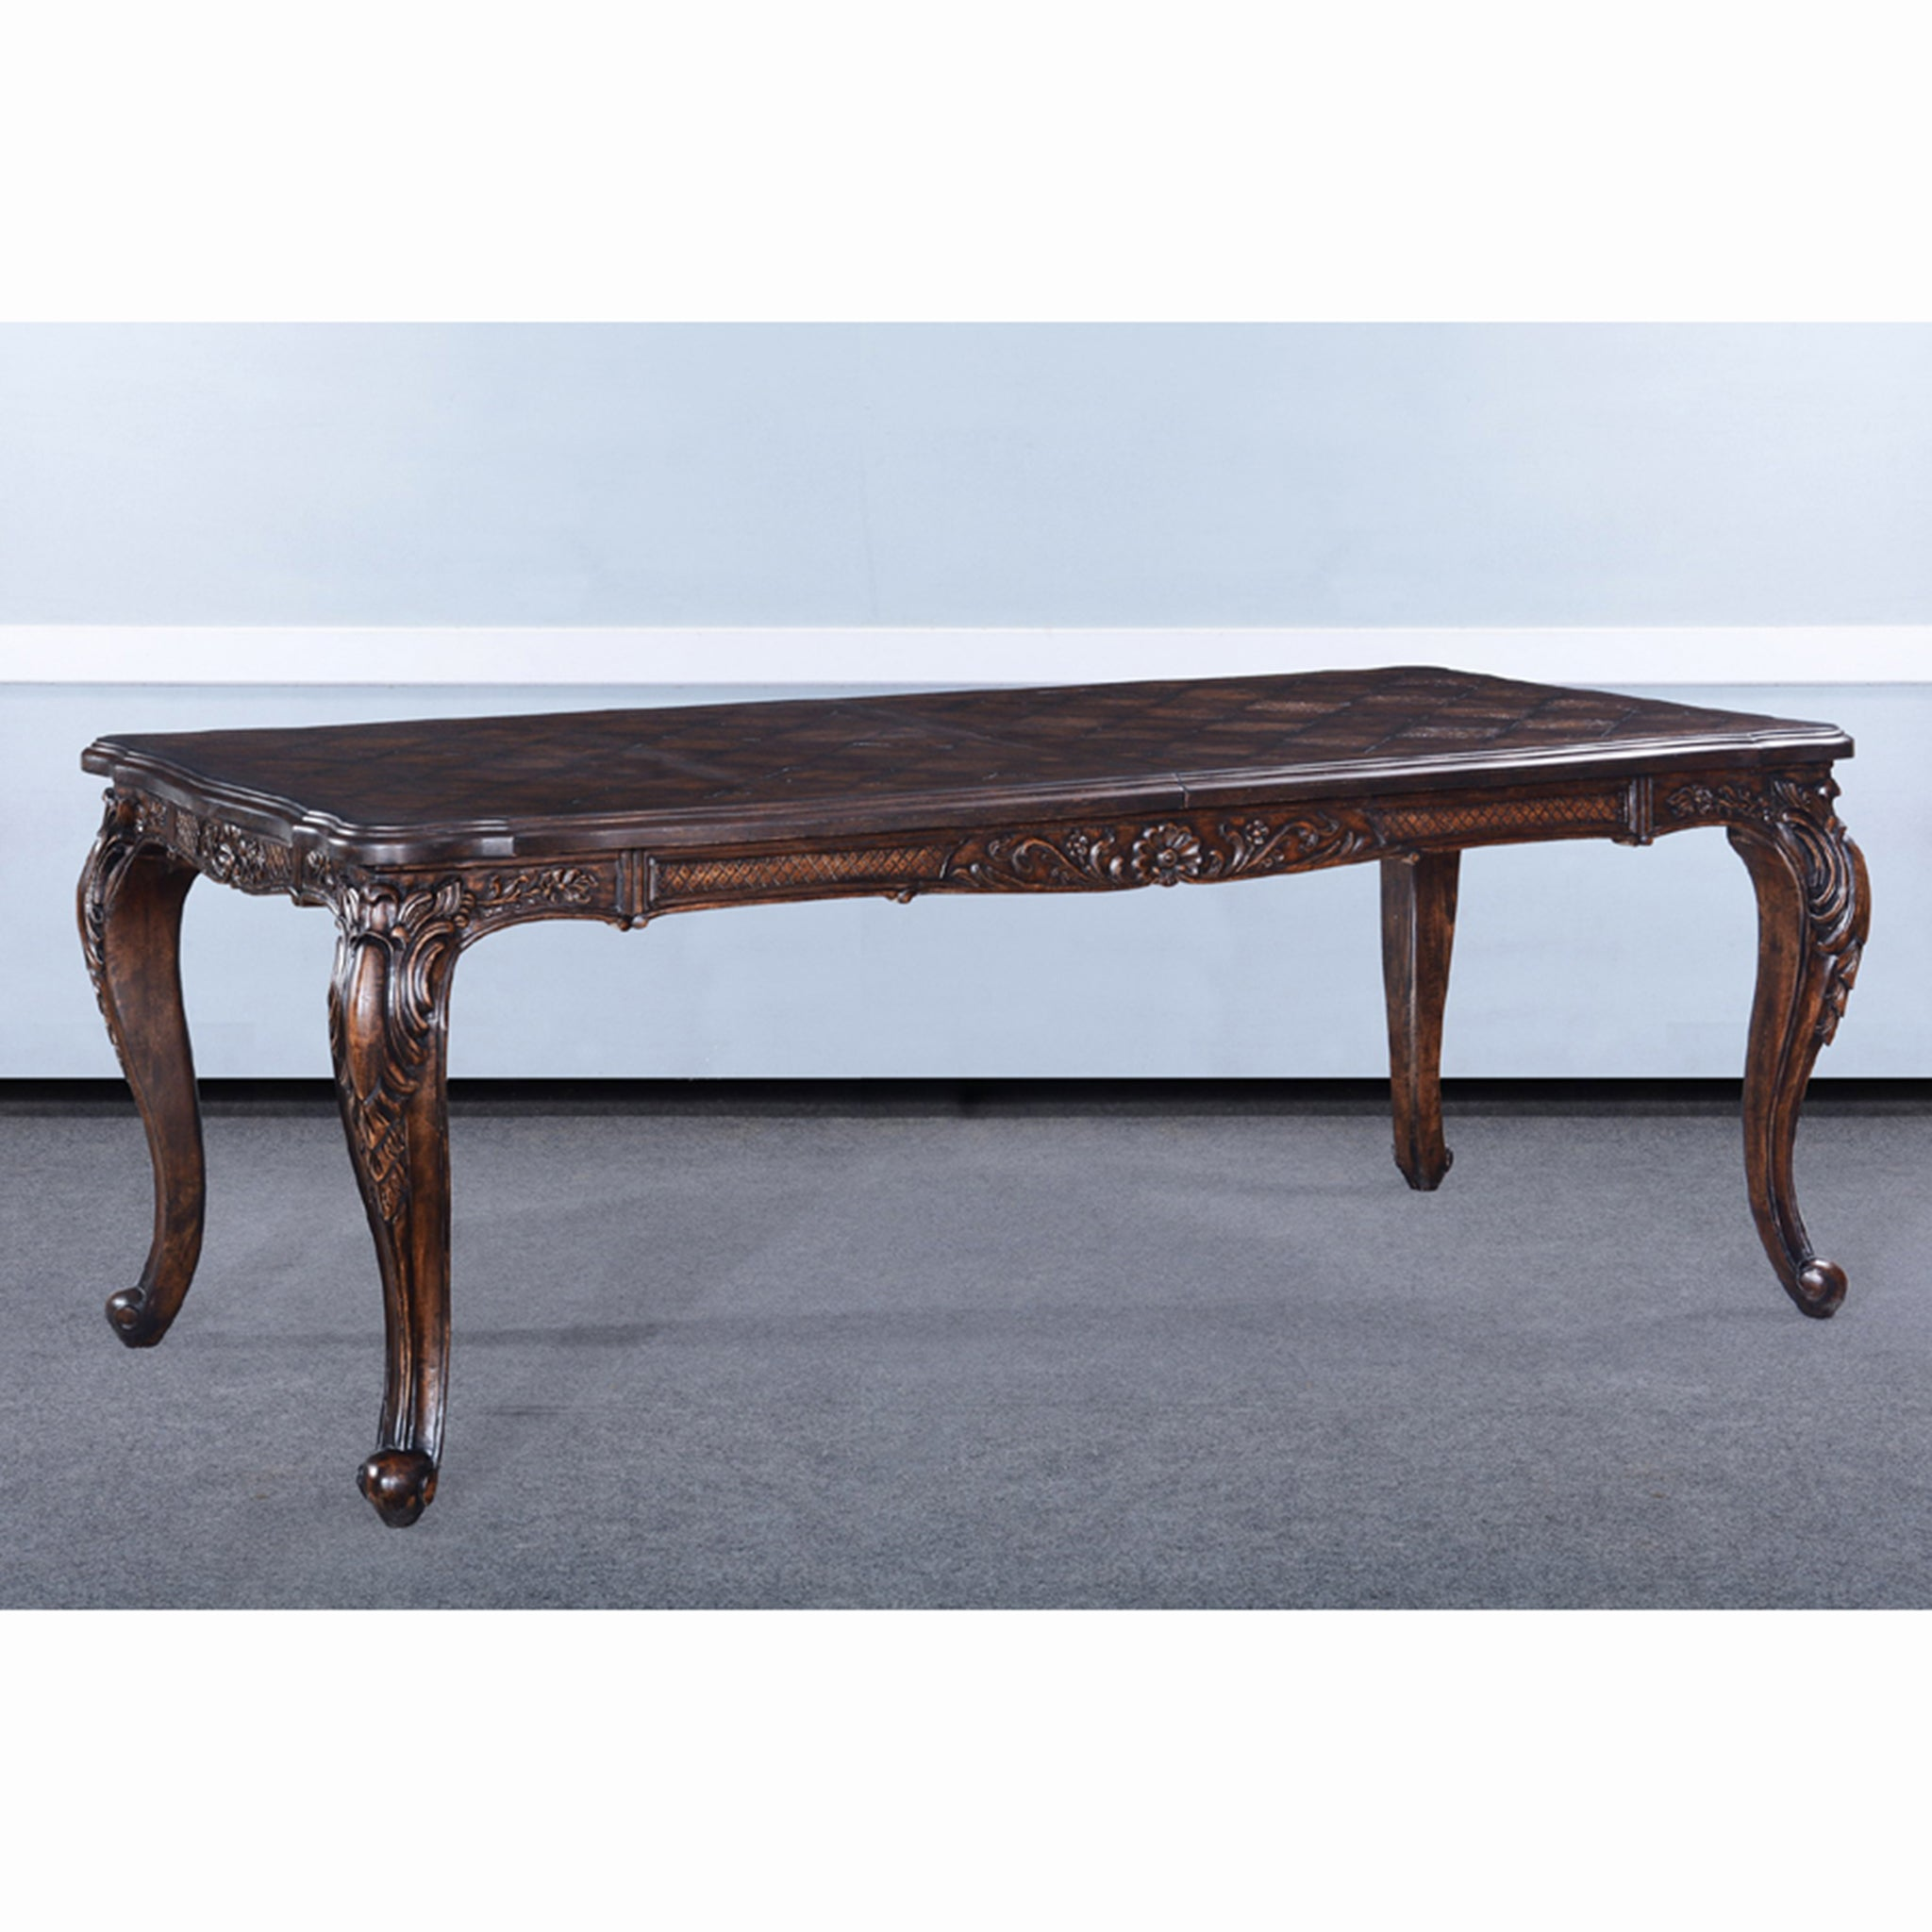 French Extension Dining Table Distressed Walnut Finish - Furniture on Main